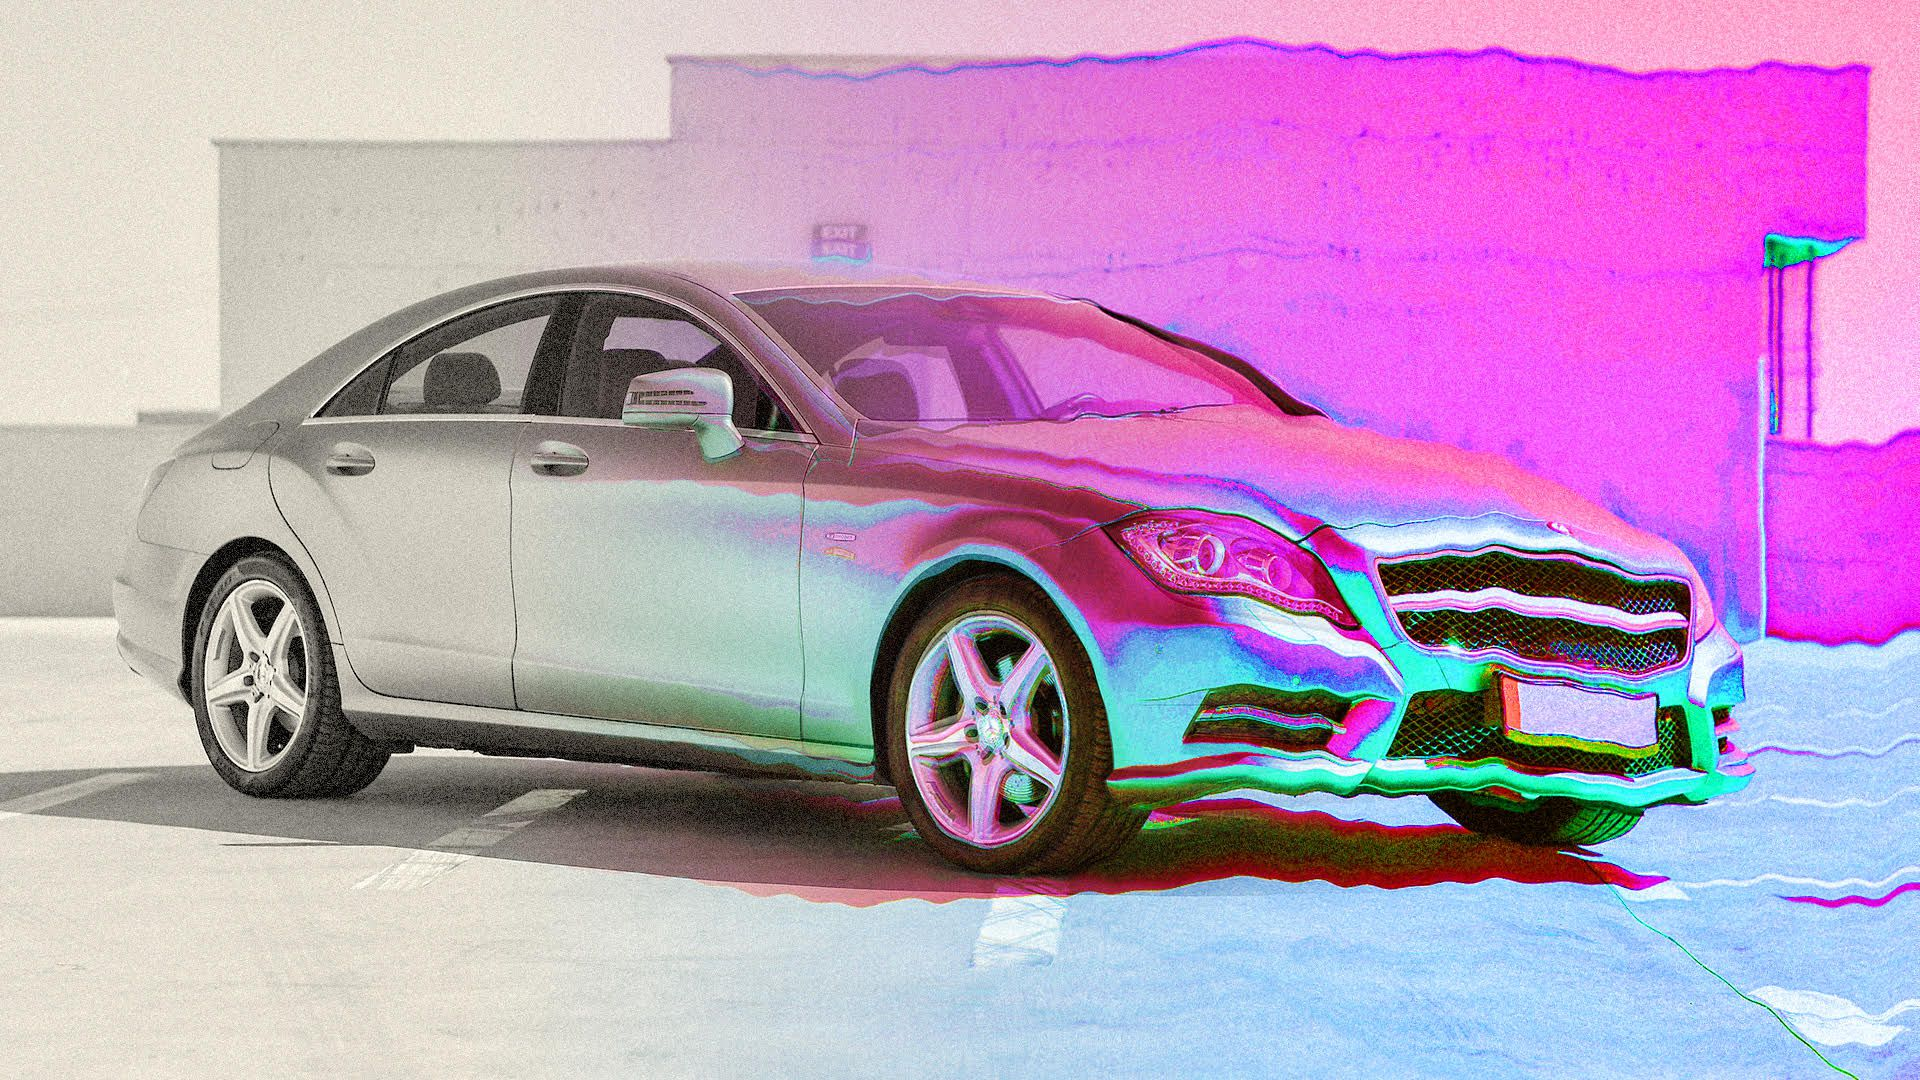 a photo of a car warping into rainbow hues suggestive of computer simulation